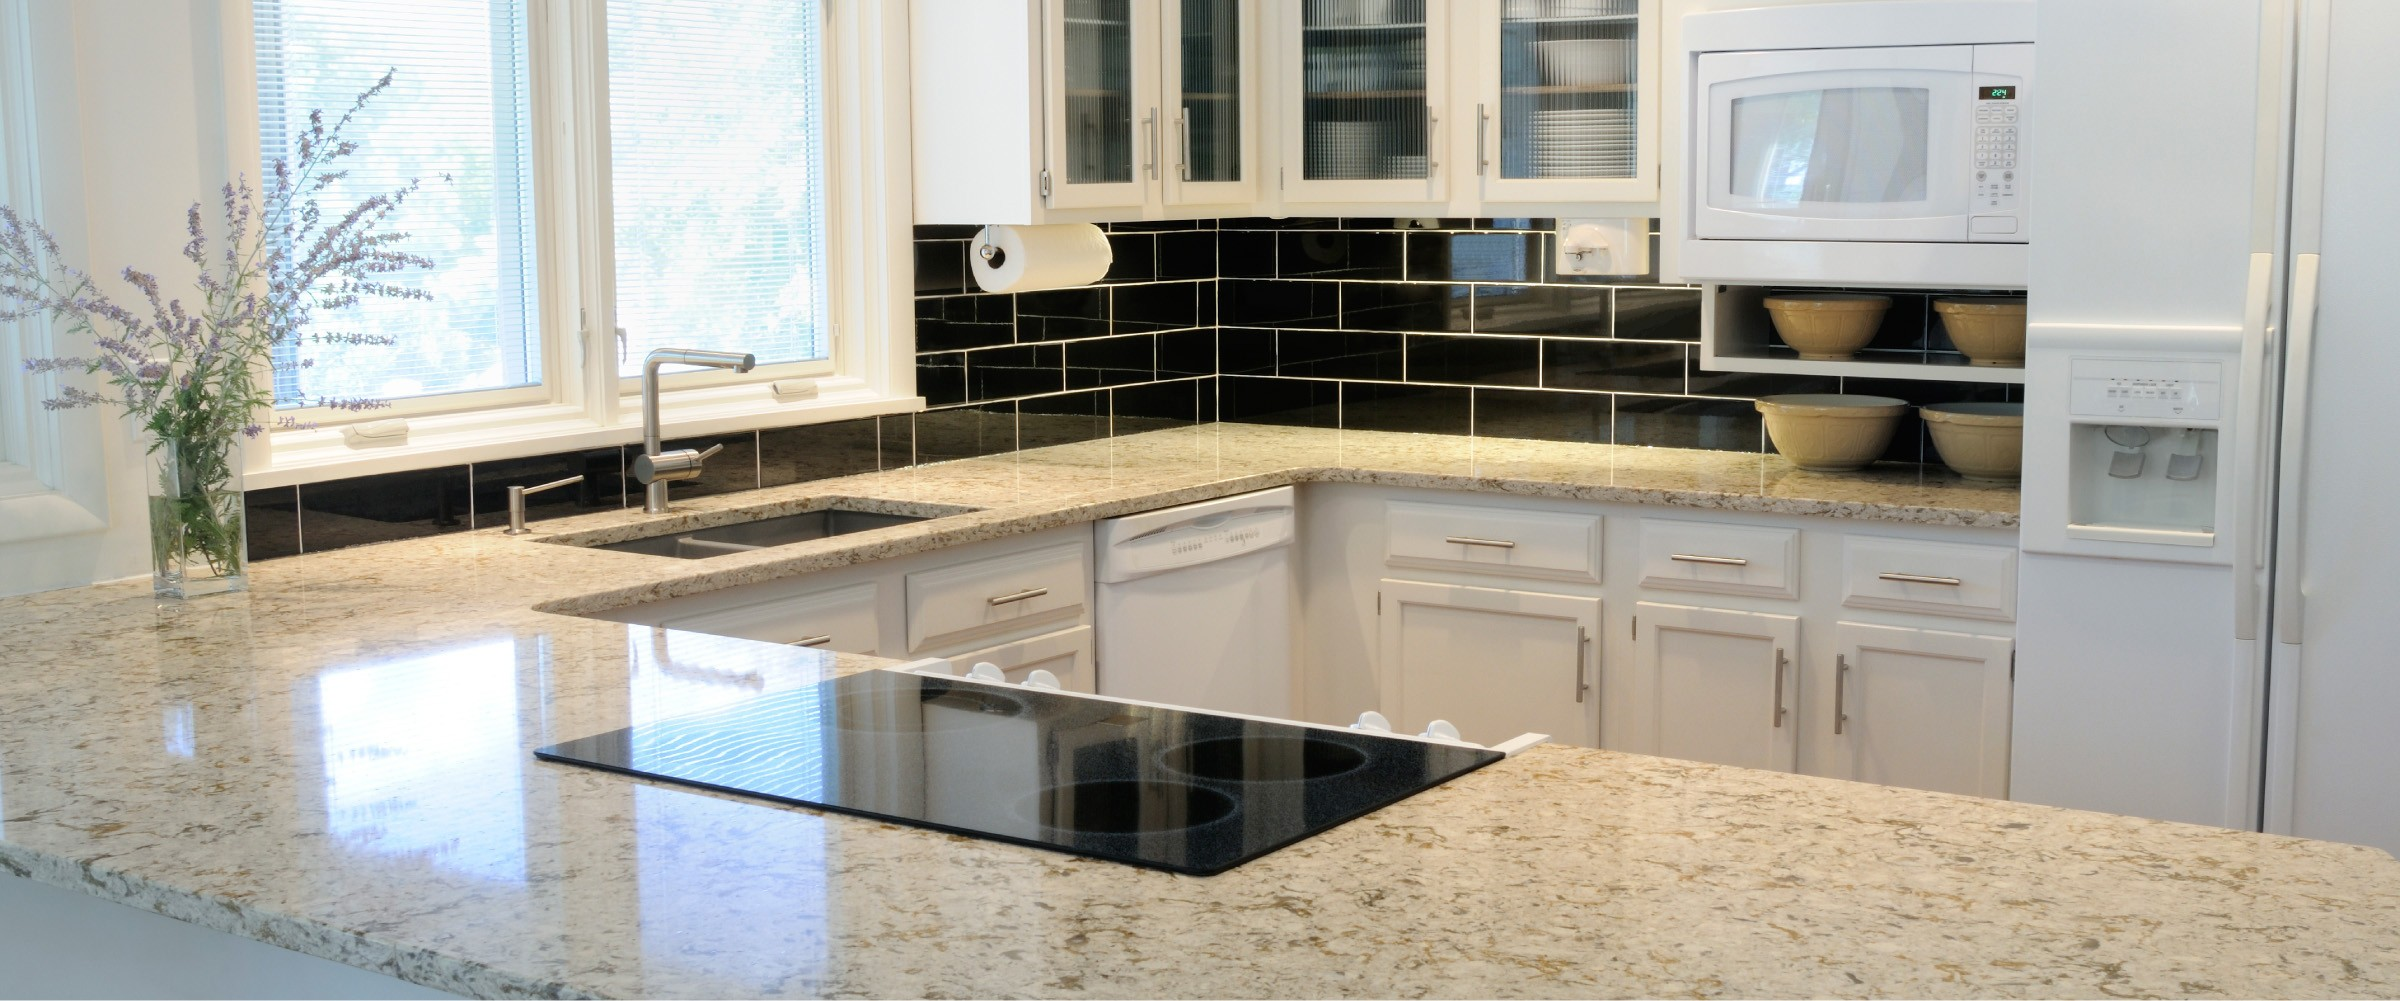 white-kitchen-marble-countertop